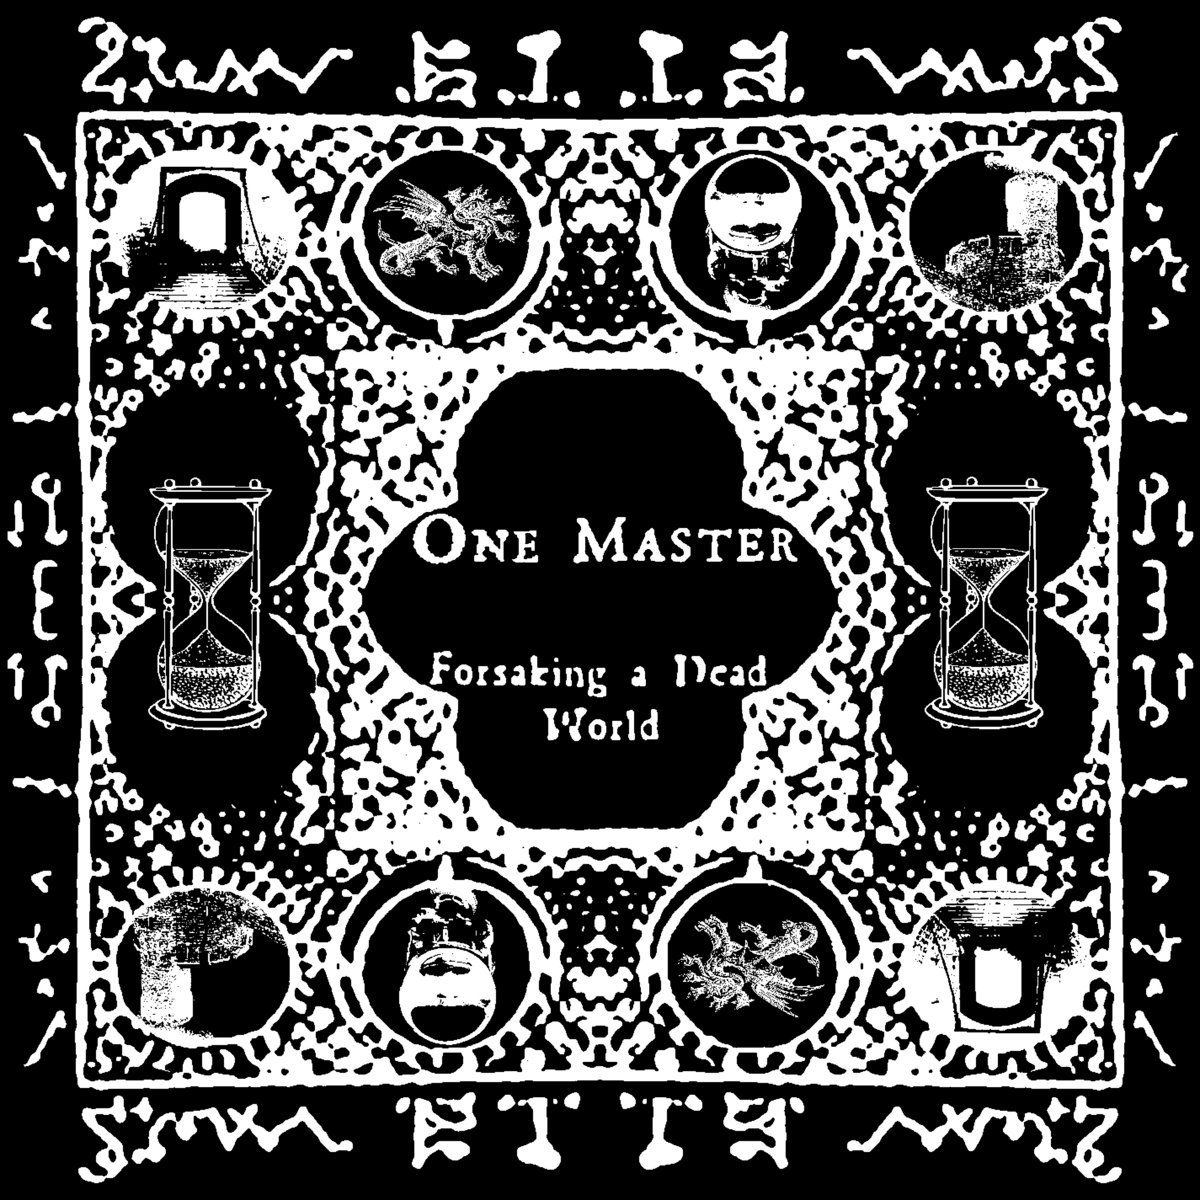 Review for One Master - Forsaking a Dead World